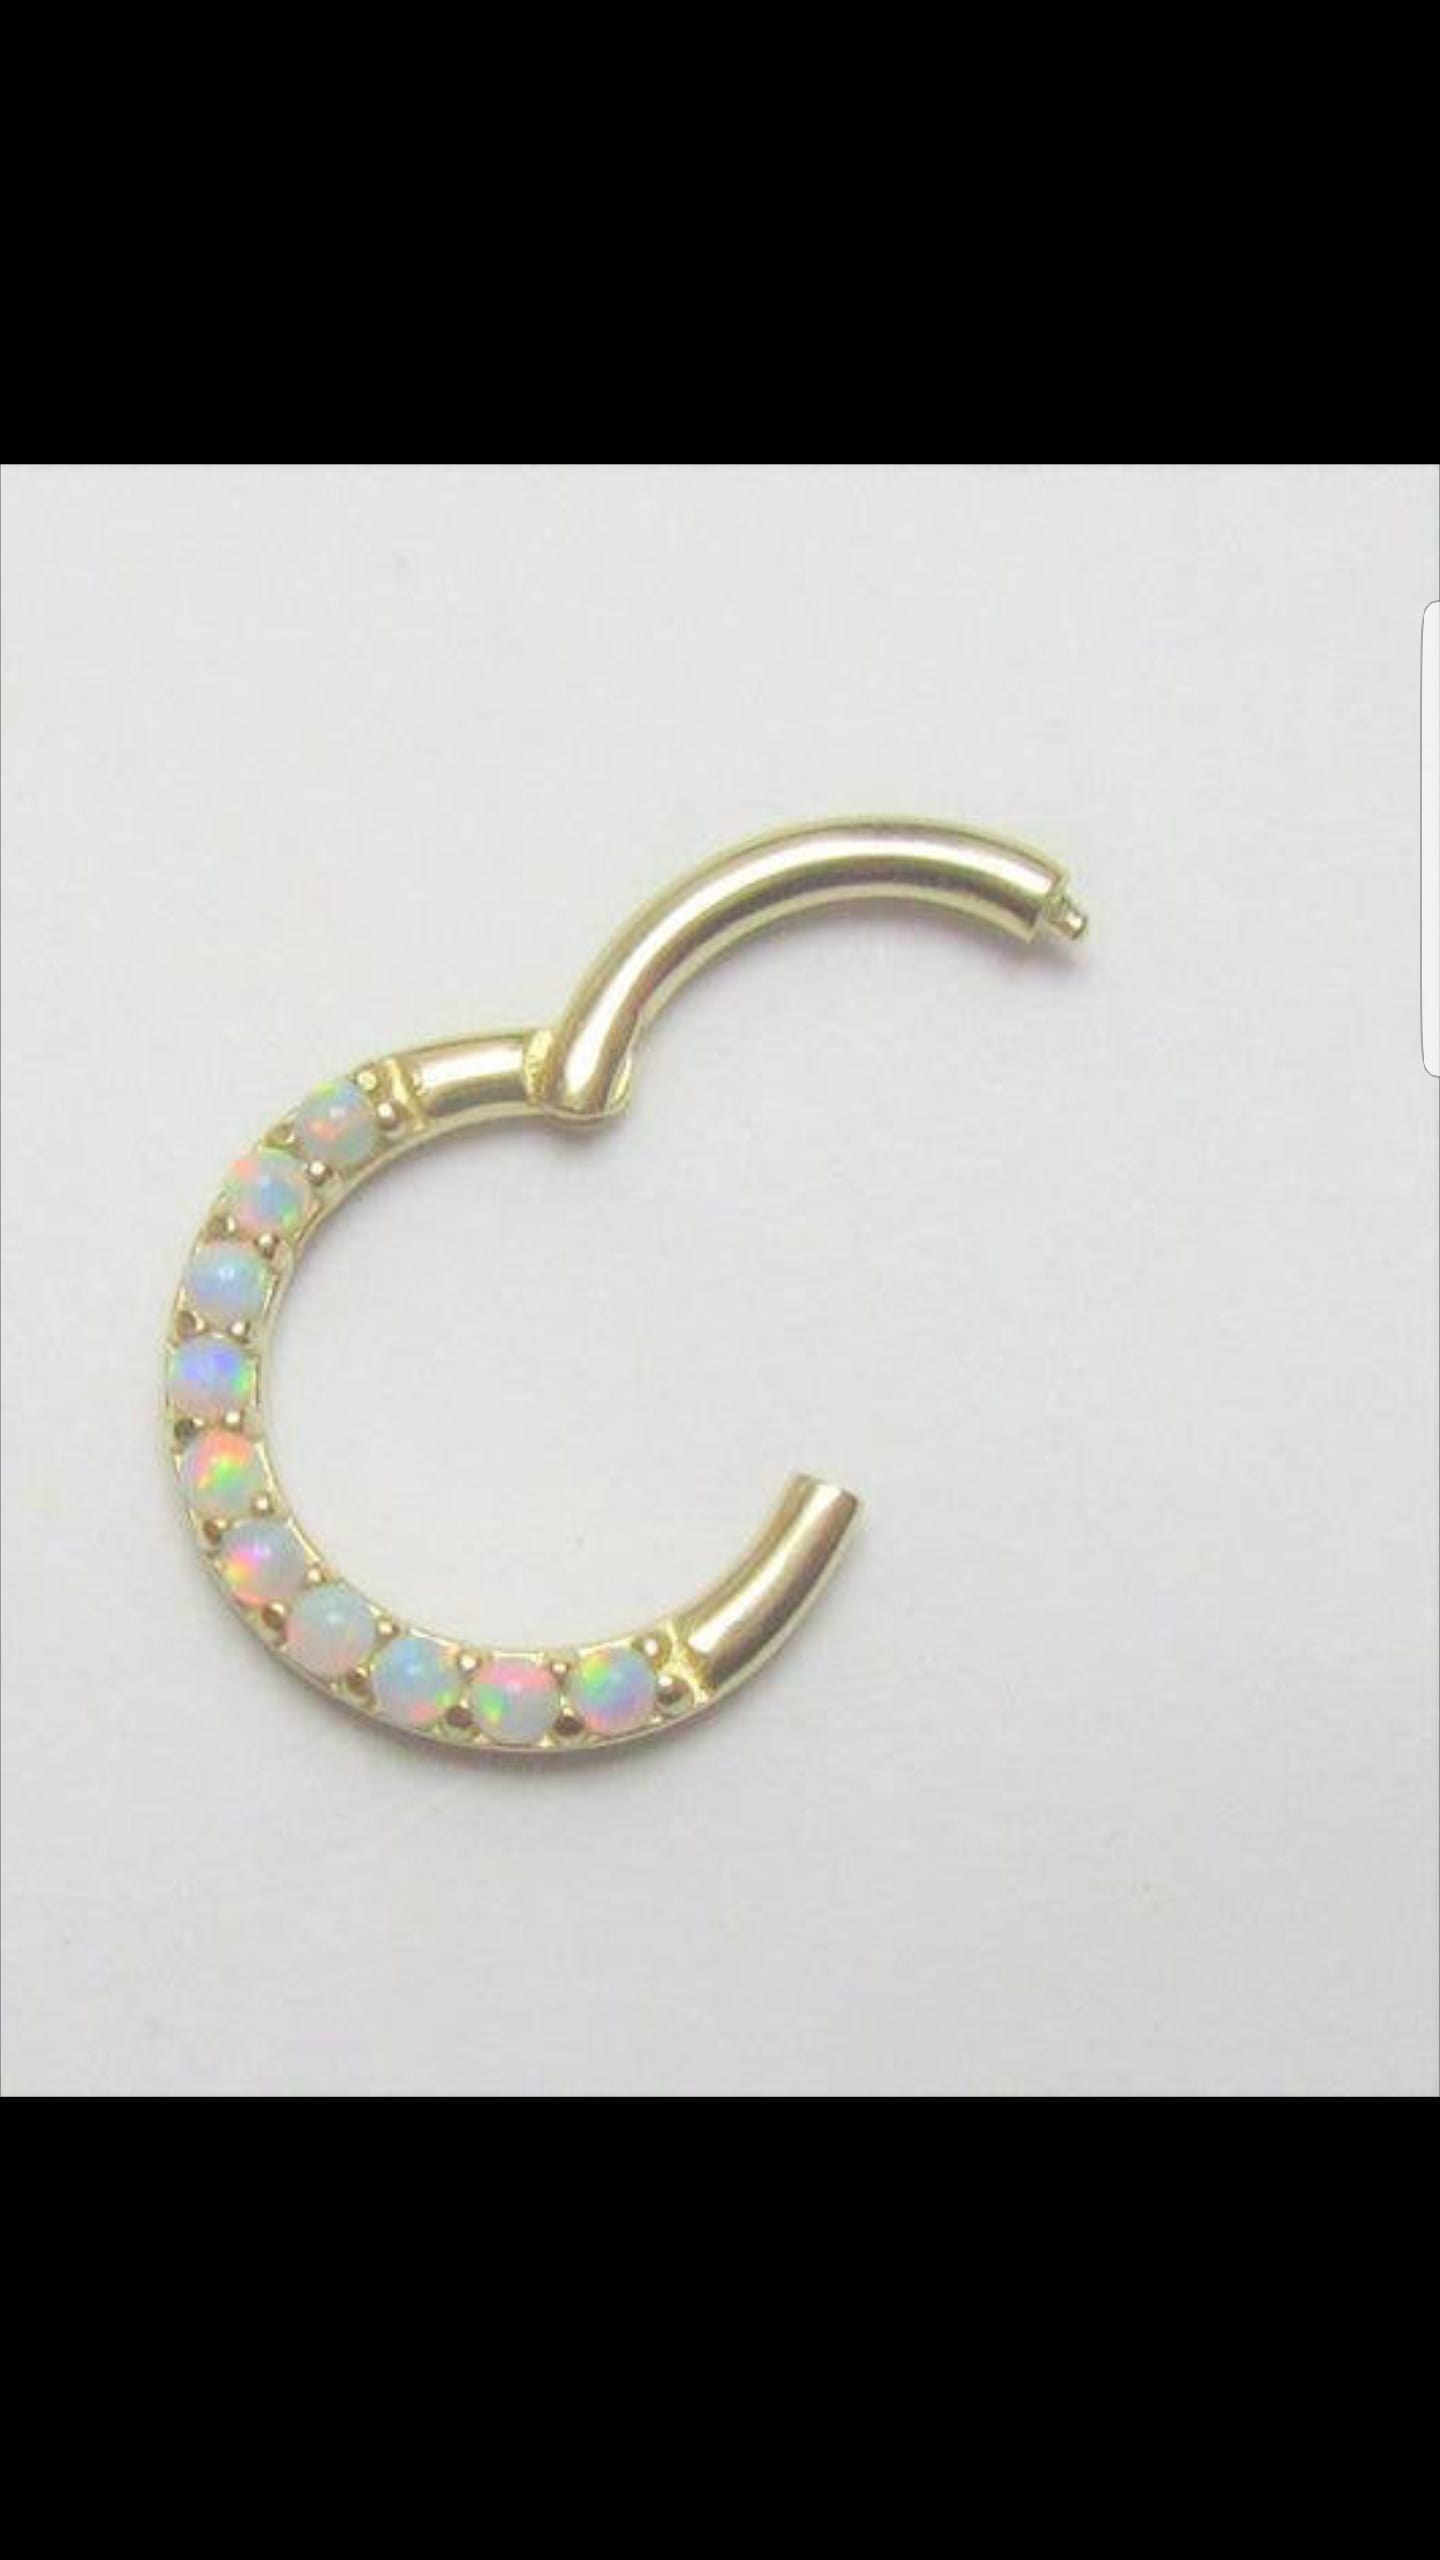 Send You A 14k Gold Hoop Ring With Opals By Lottopicker67